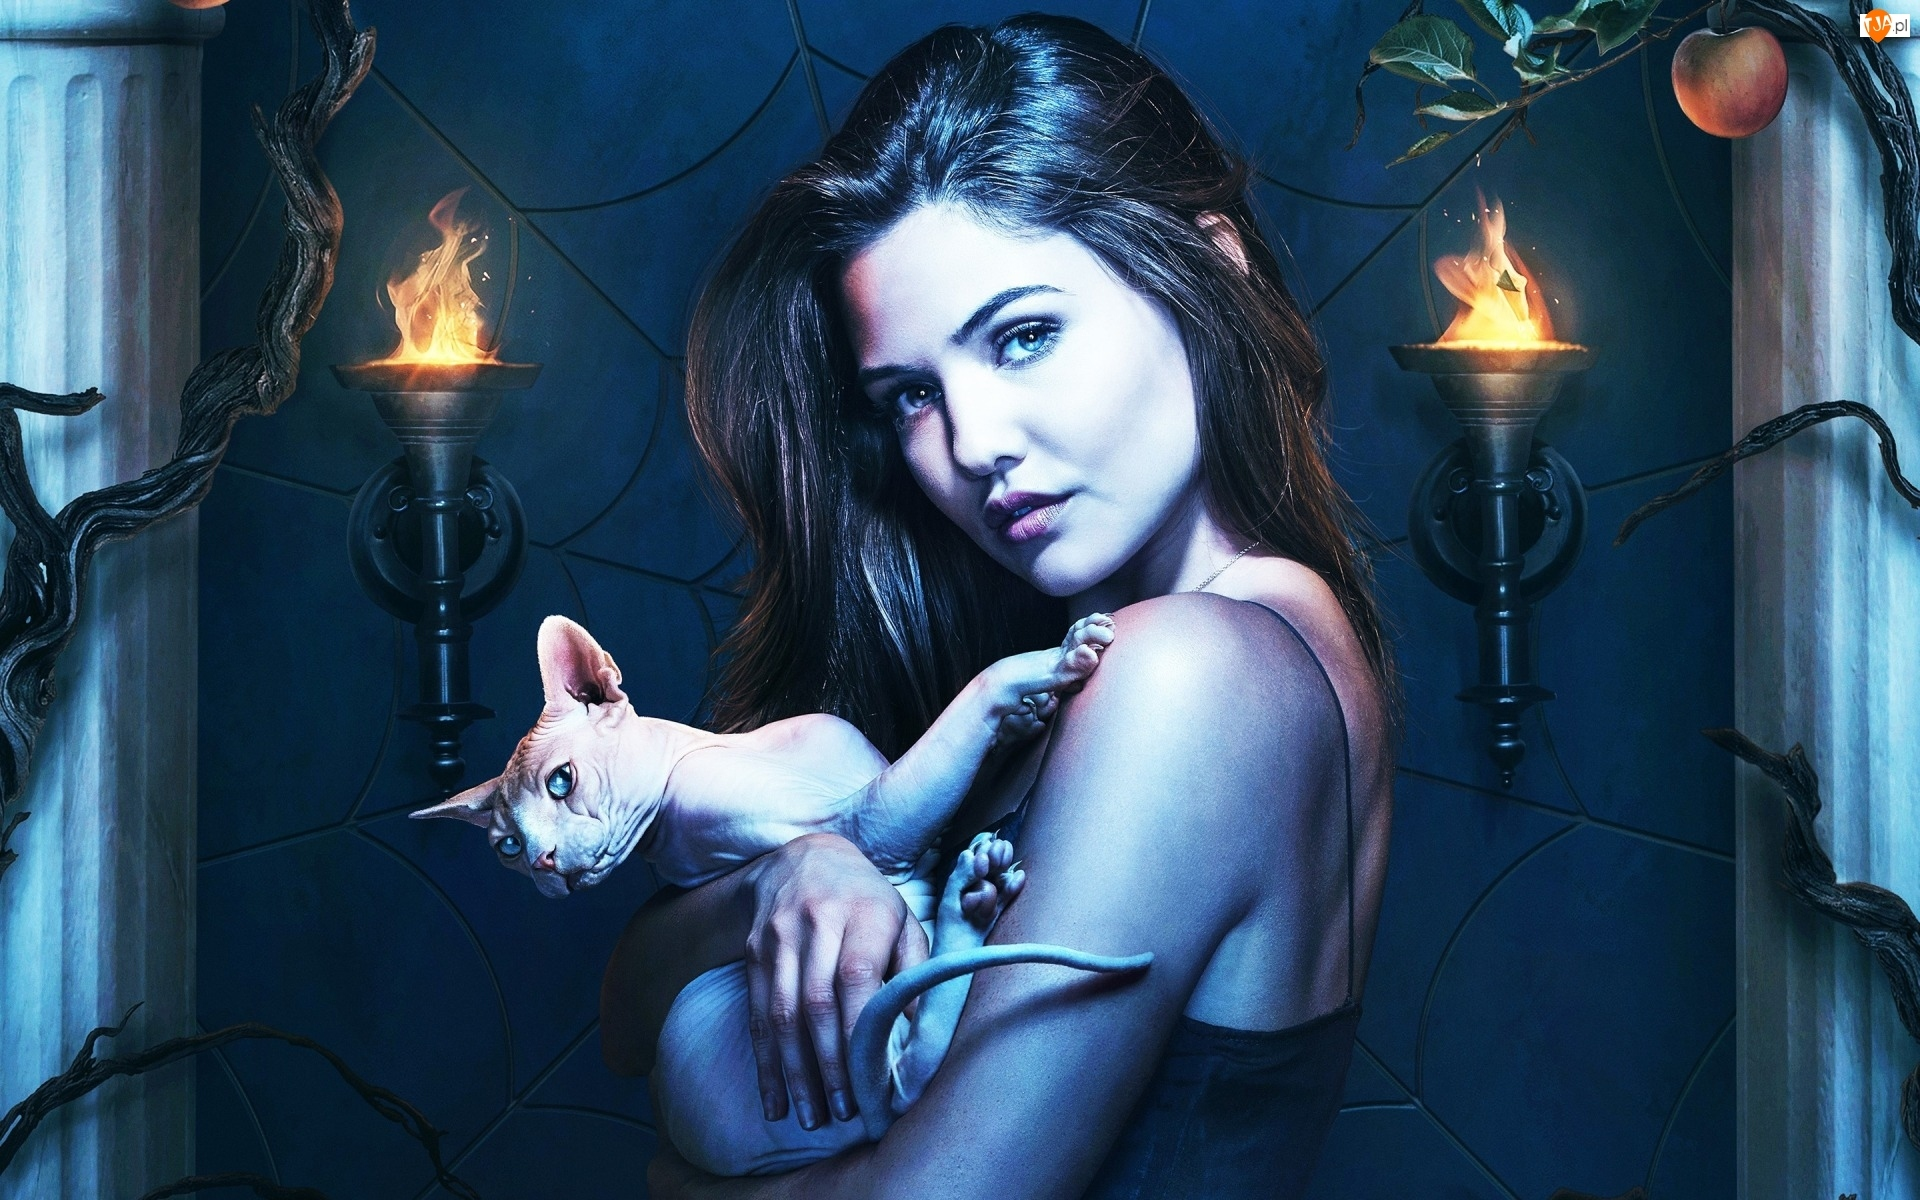 The Originals, Kot, Danielle Campbell, Sfinks doński, Serial, Kobieta